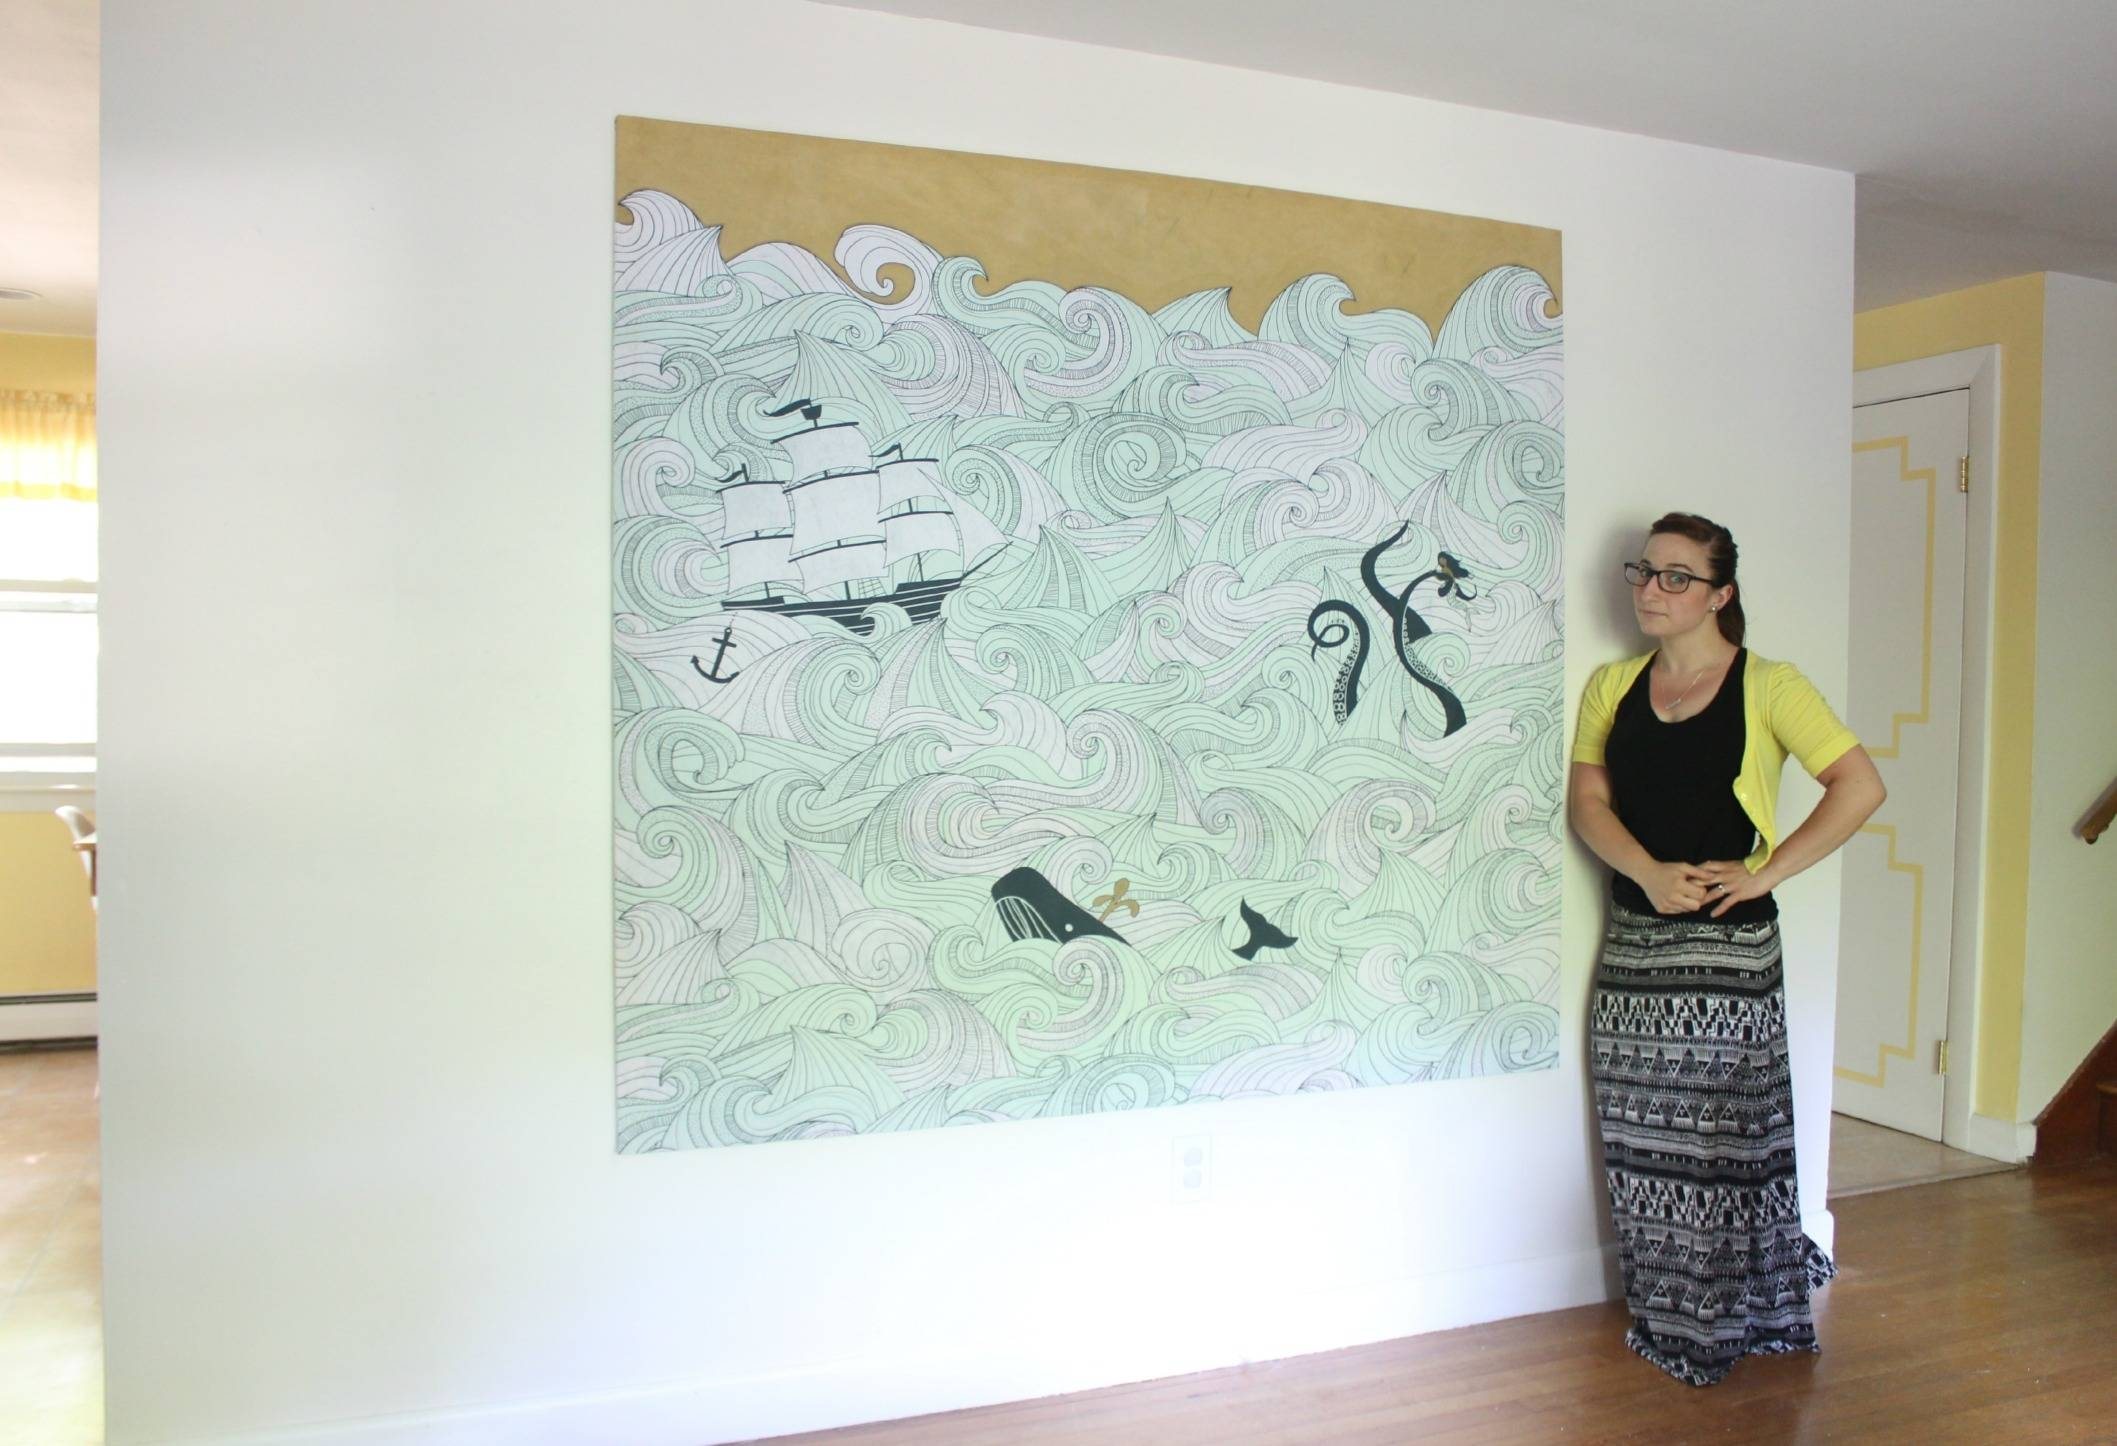 Diy Stretched Fabric Canvas (With A Shower Curtain!) | Stephanie Inside Most Recent Fabric Canvas Wall Art (View 9 of 20)